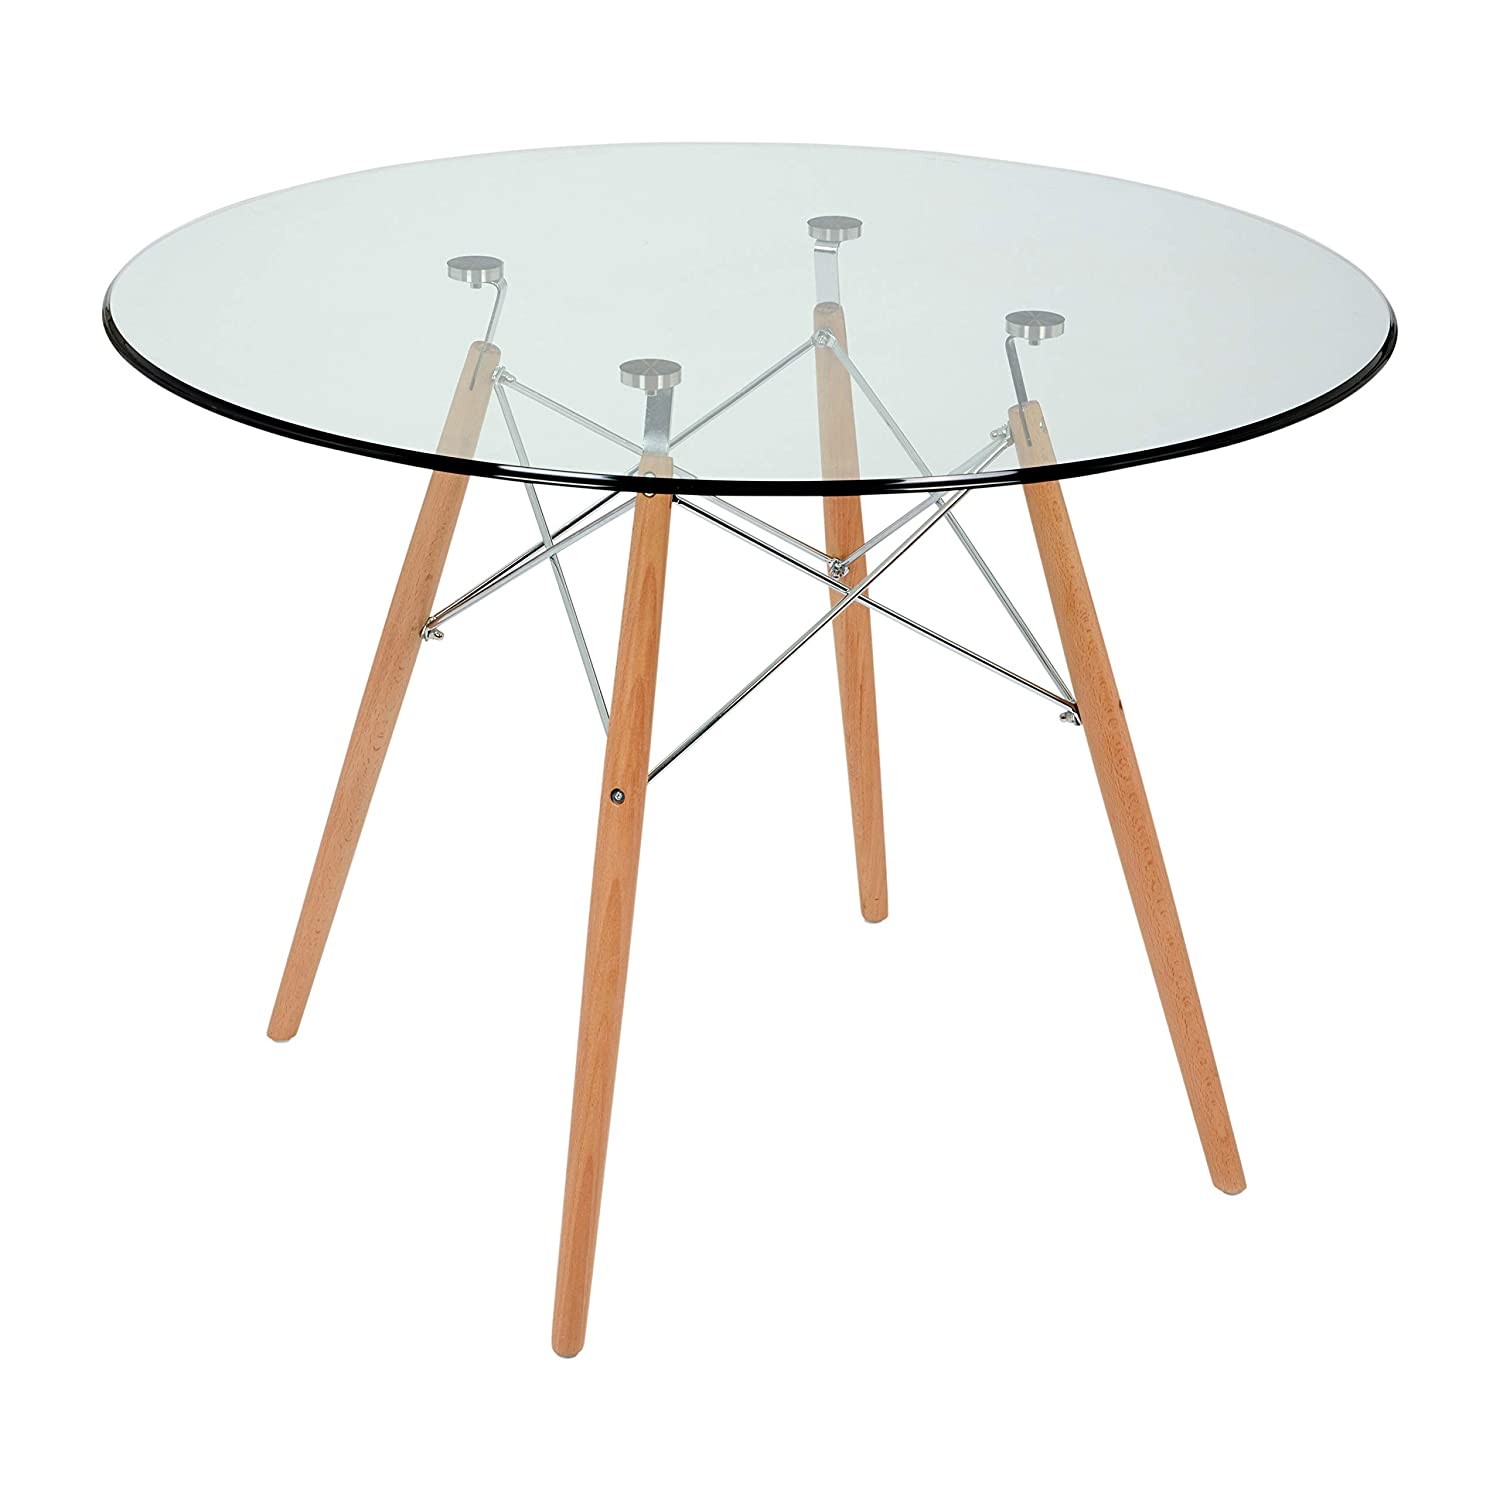 Fusionwell Dsw Style Dining Round Table Glass Top With Natural